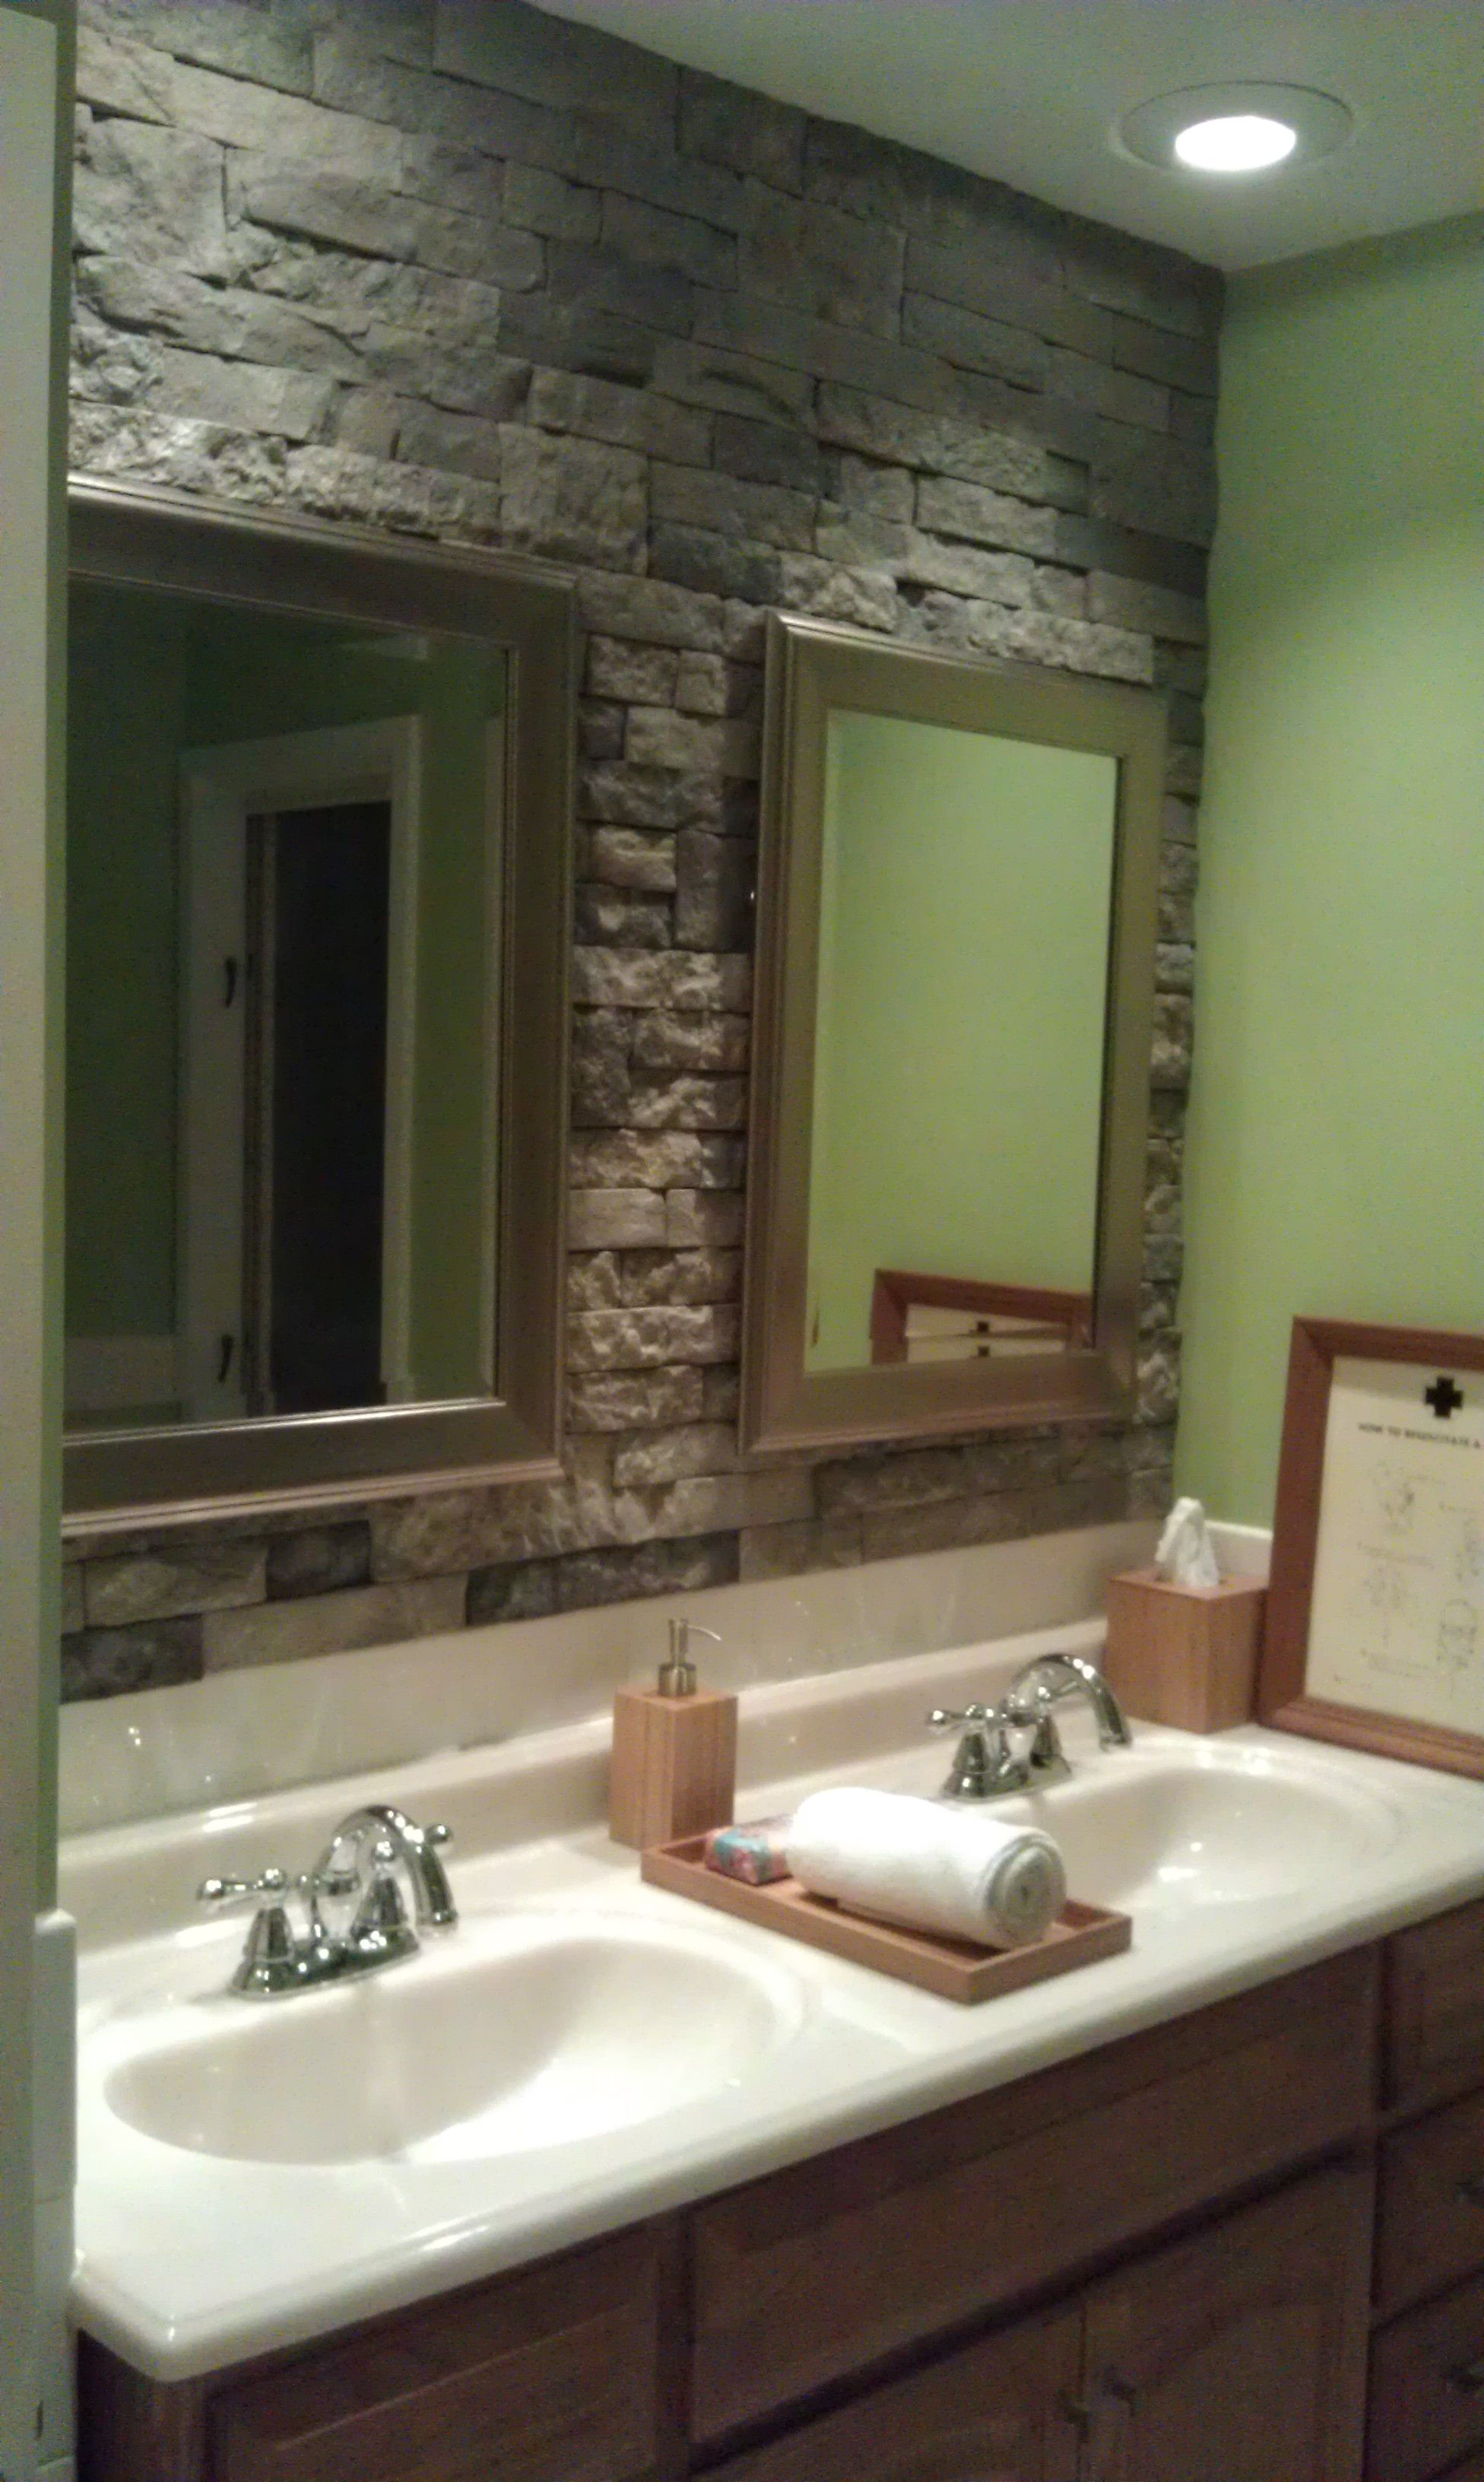 Good Airstone Accent Wall Bathroom - f4a2cf8ca929f08b1cd96a7a492b5f71  Perfect Image Reference_304998.jpg